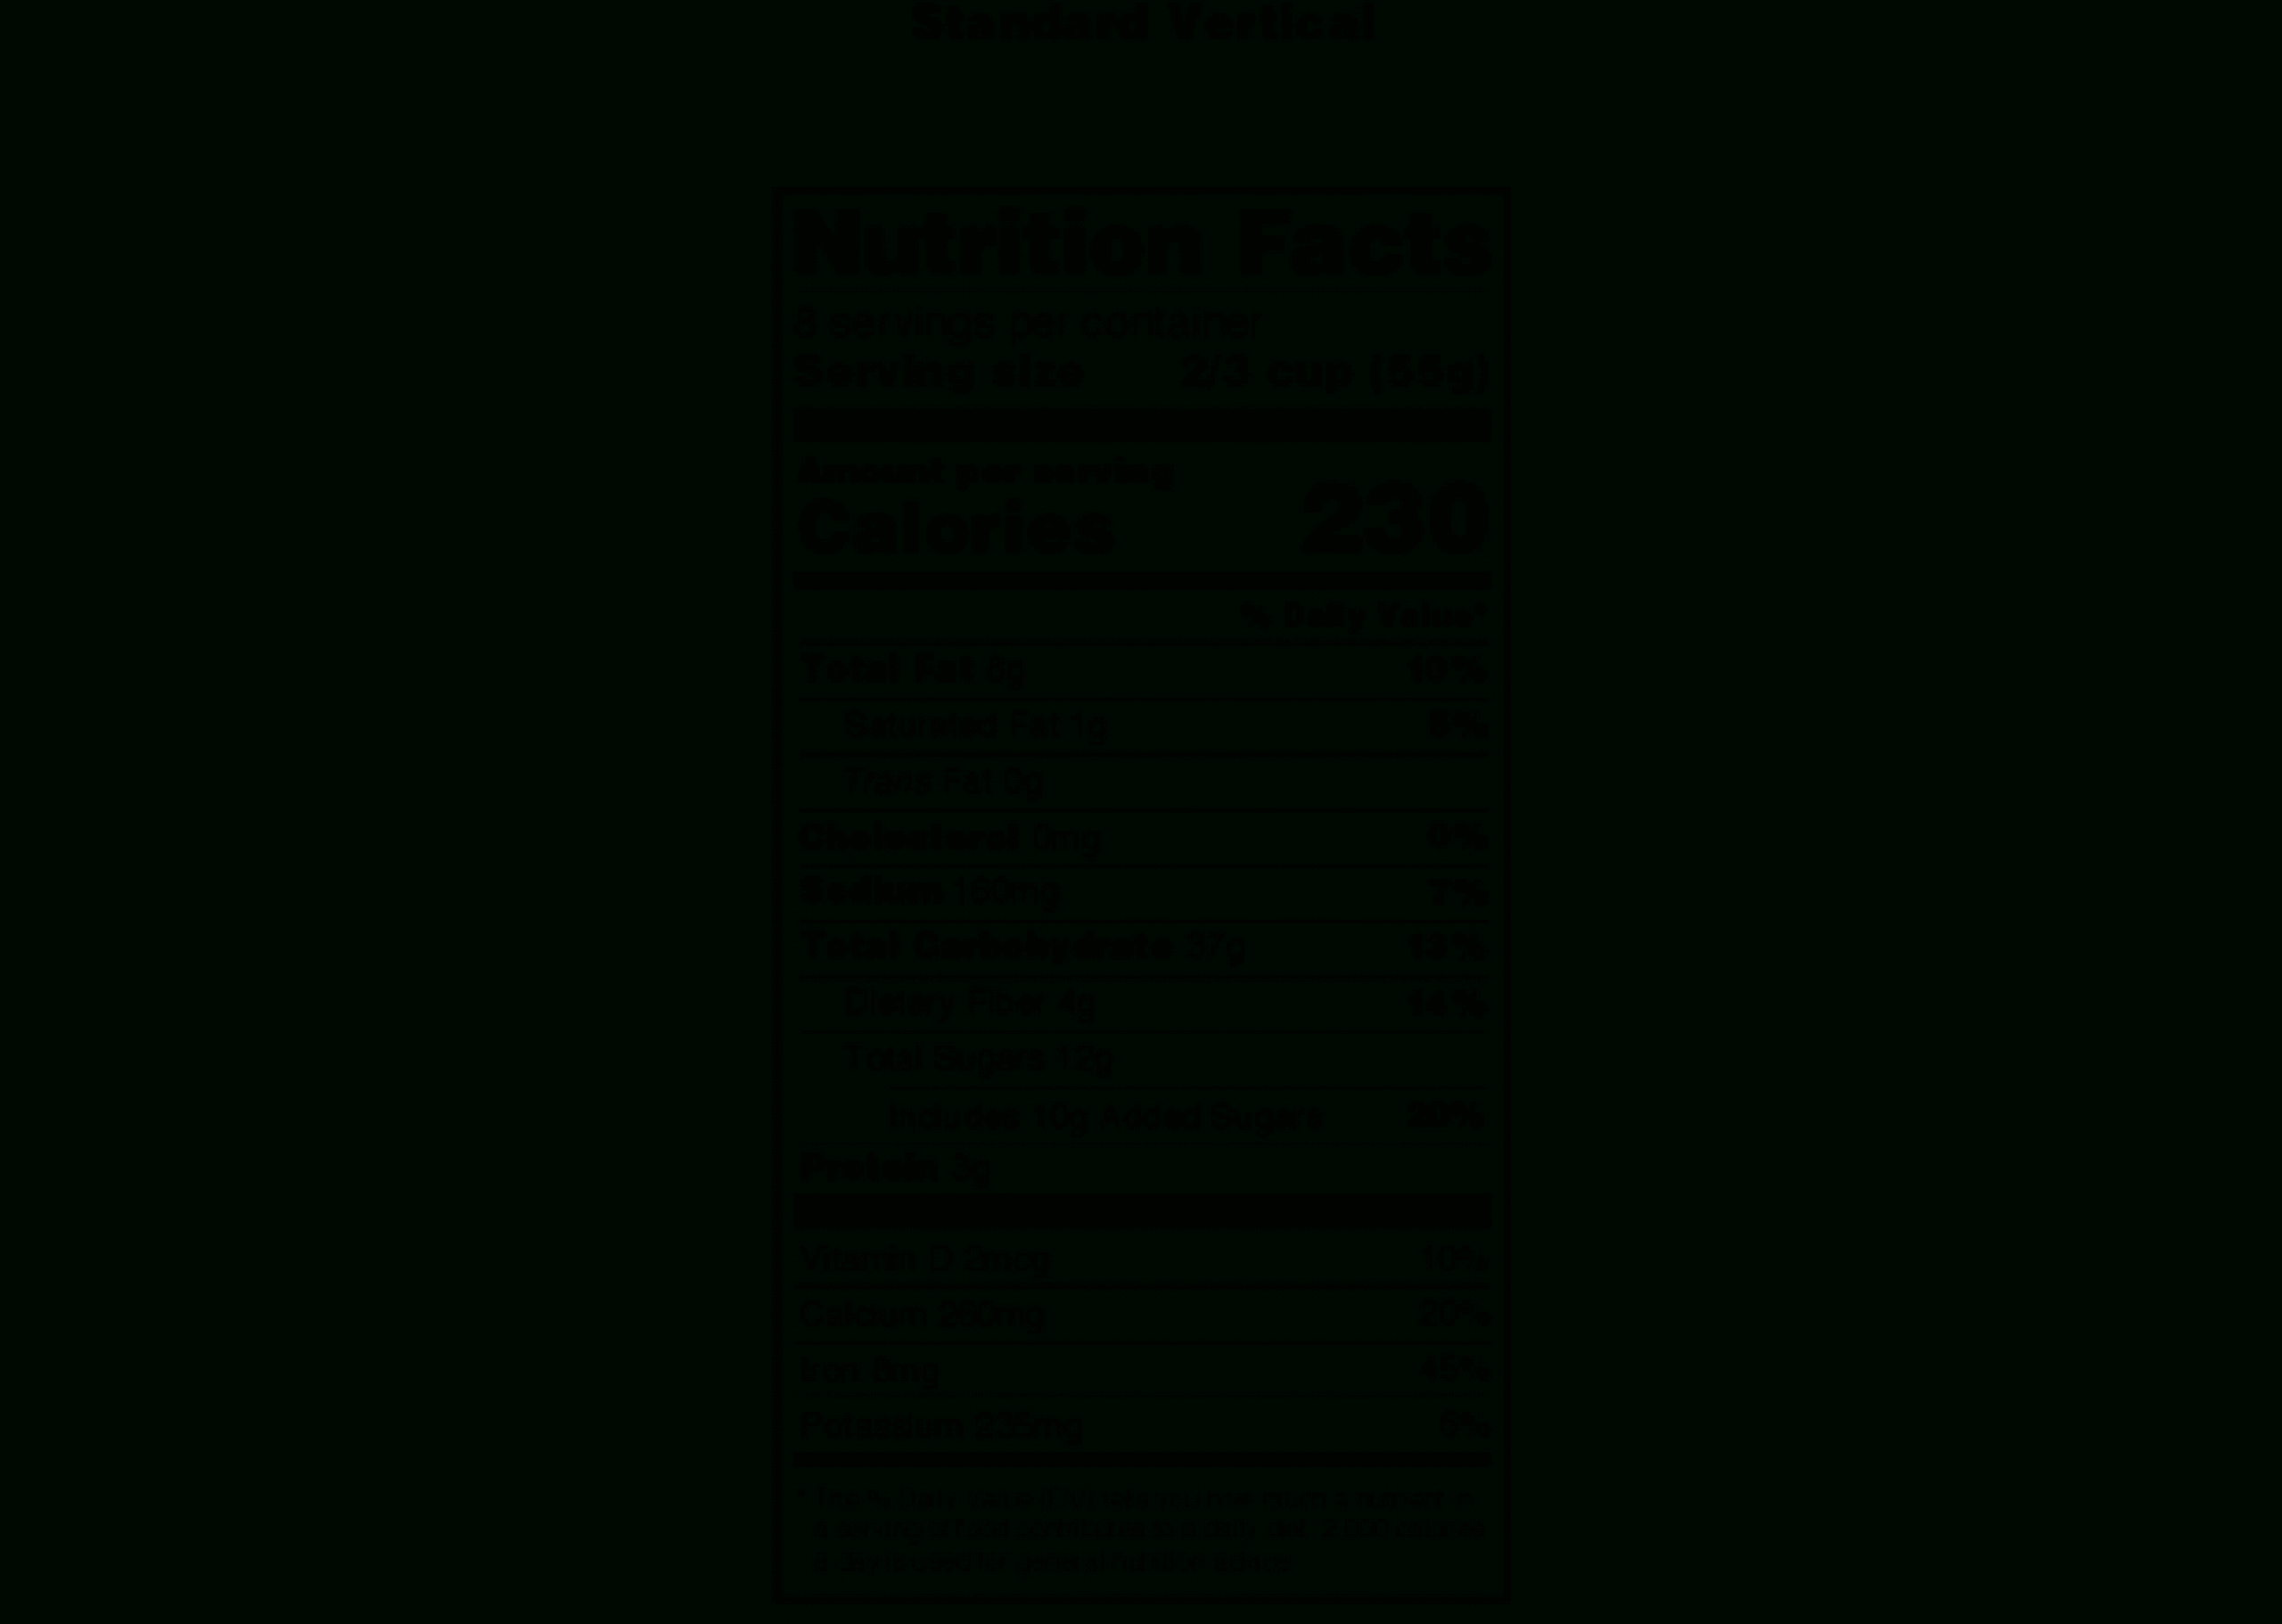 Blank Food Label Png, Picture #443851 Blank Food Label Png For Blank Food Label Template